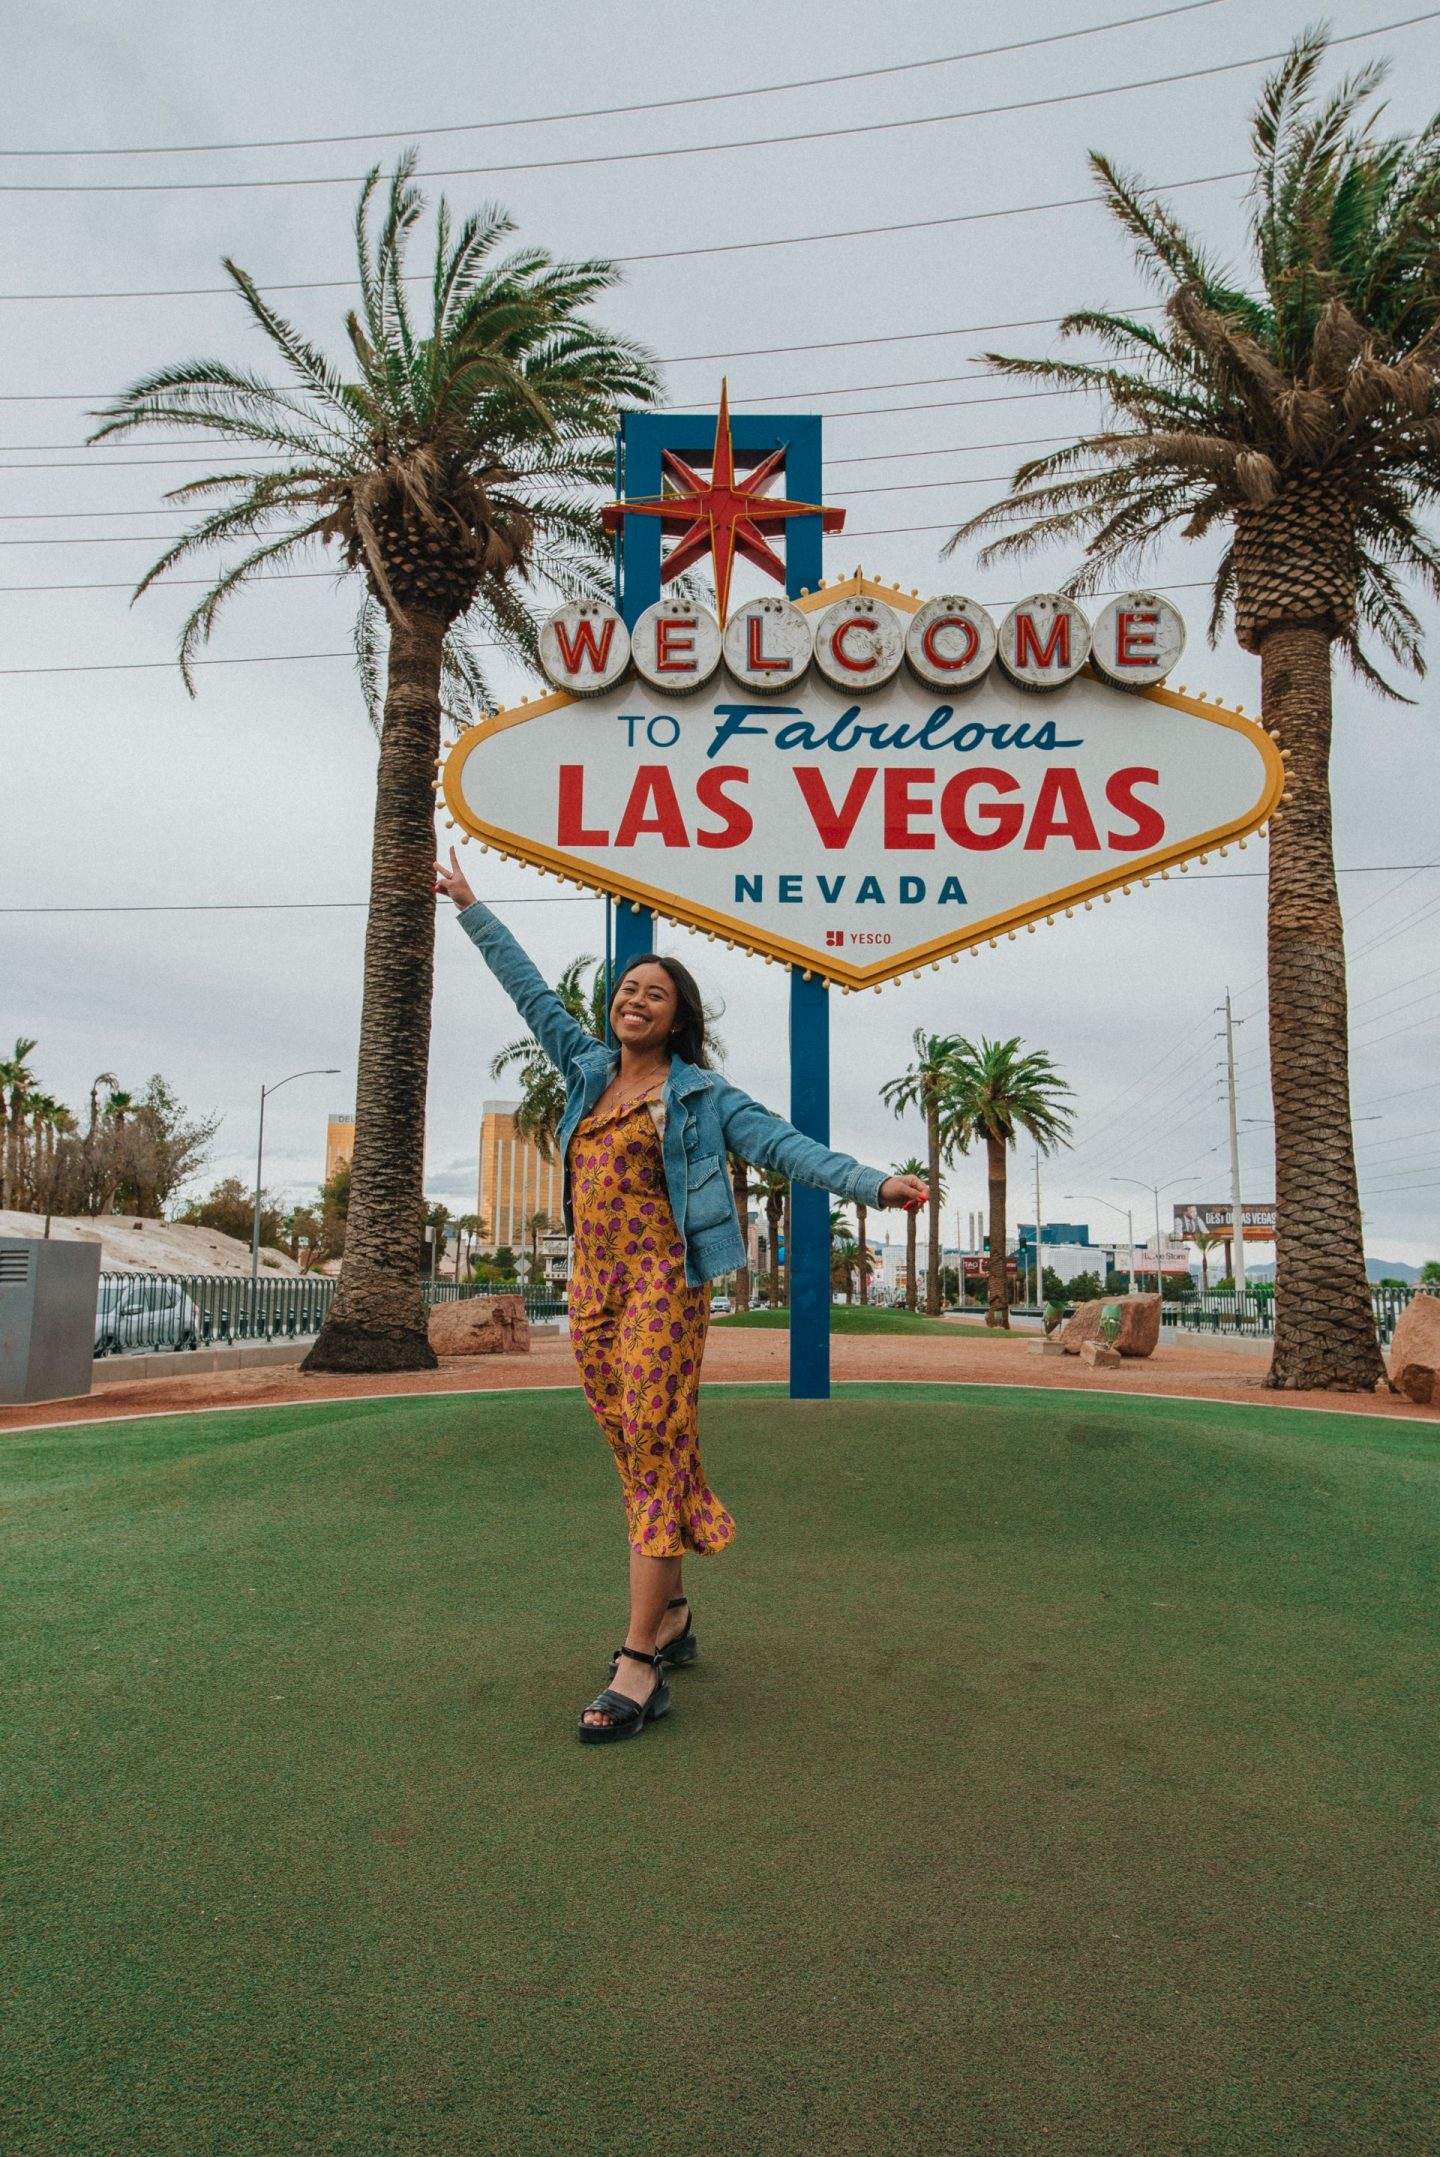 Most Instagrammable Places in Las Vegas – When in Vegas – Things to do in Las Vegas – Things to see in Las Vegas – 3 day Las Vegas weekend trip – spring Las Vegas vacation – image from www.emmasedition.com – copyright @emmasedition